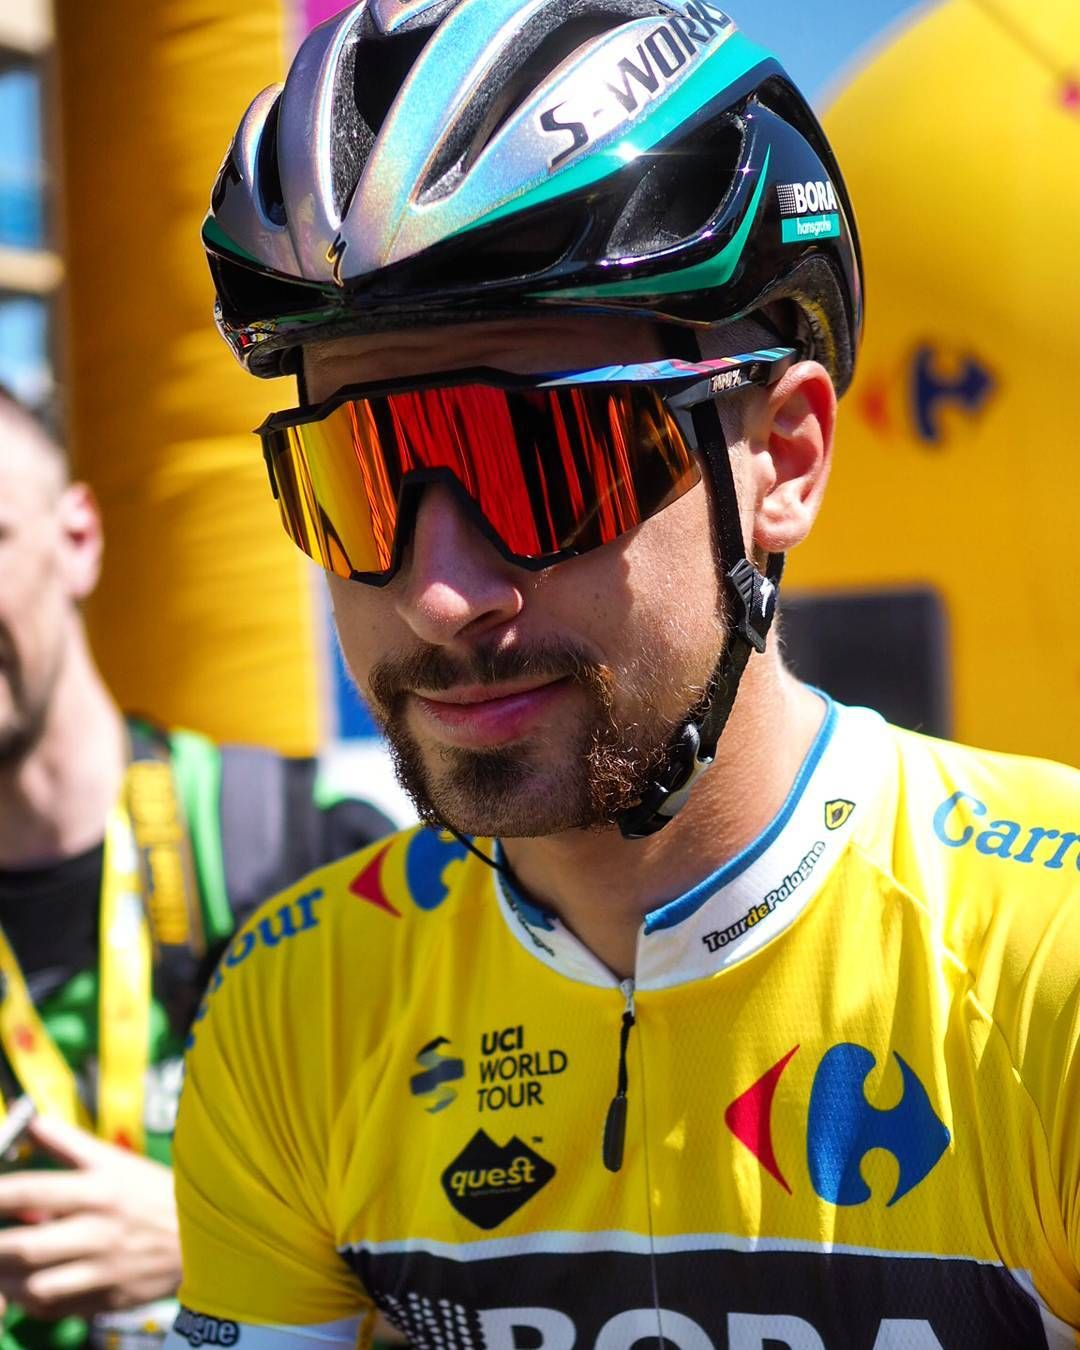 Peter Sagan, the 1st leader of Tour de Pologne 2017 on the start of Stage 2